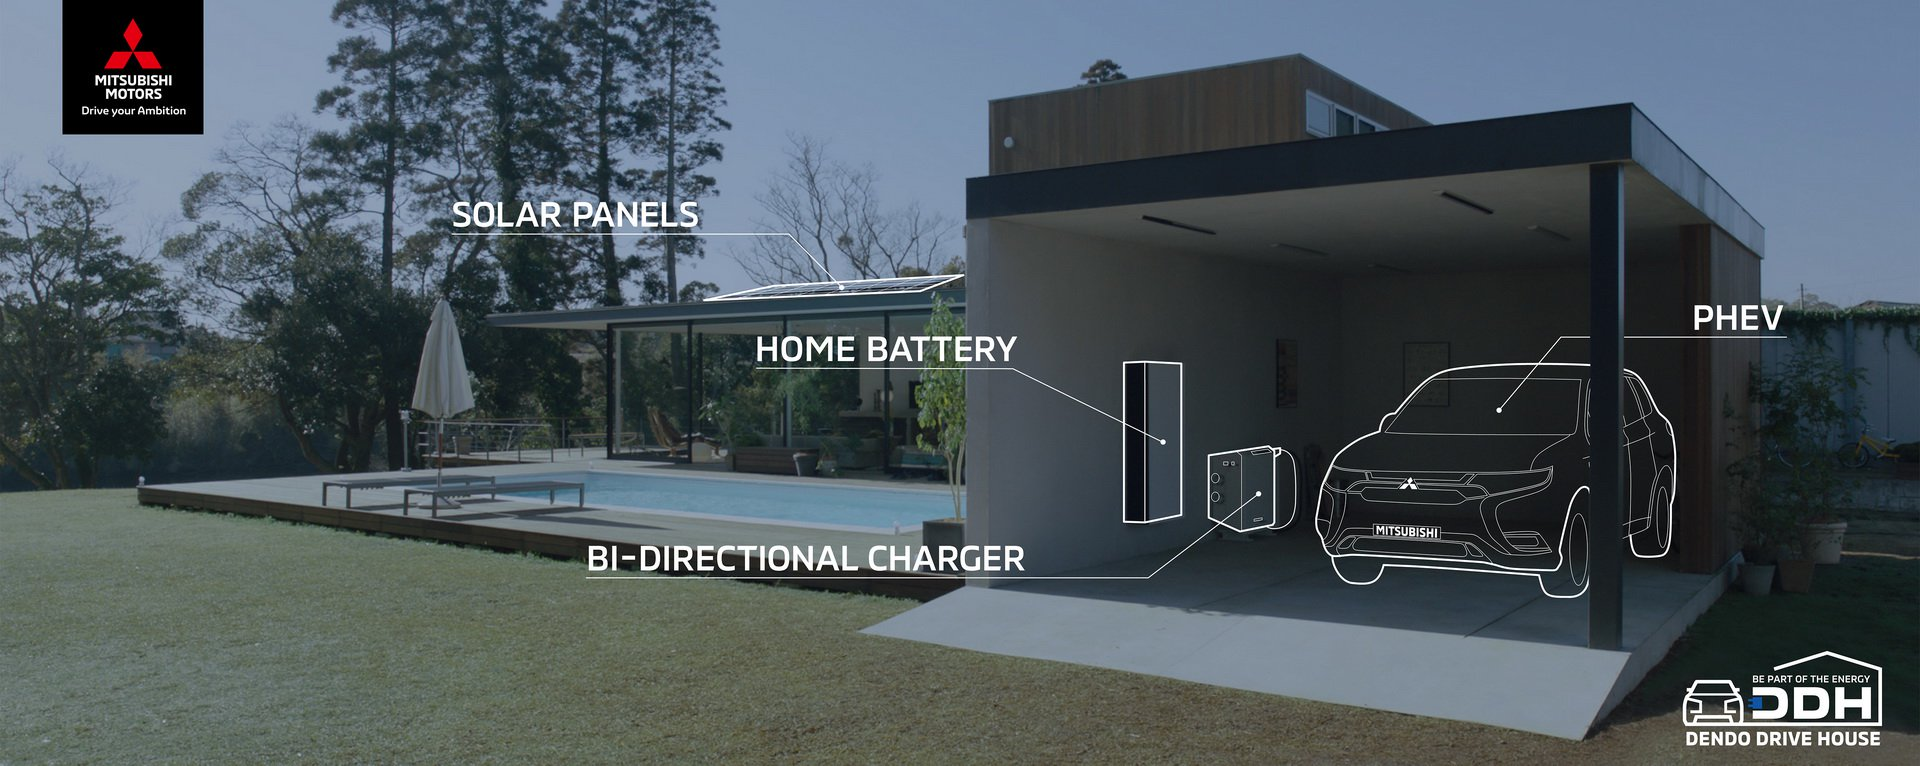 Mitsubishi home energy packaged system